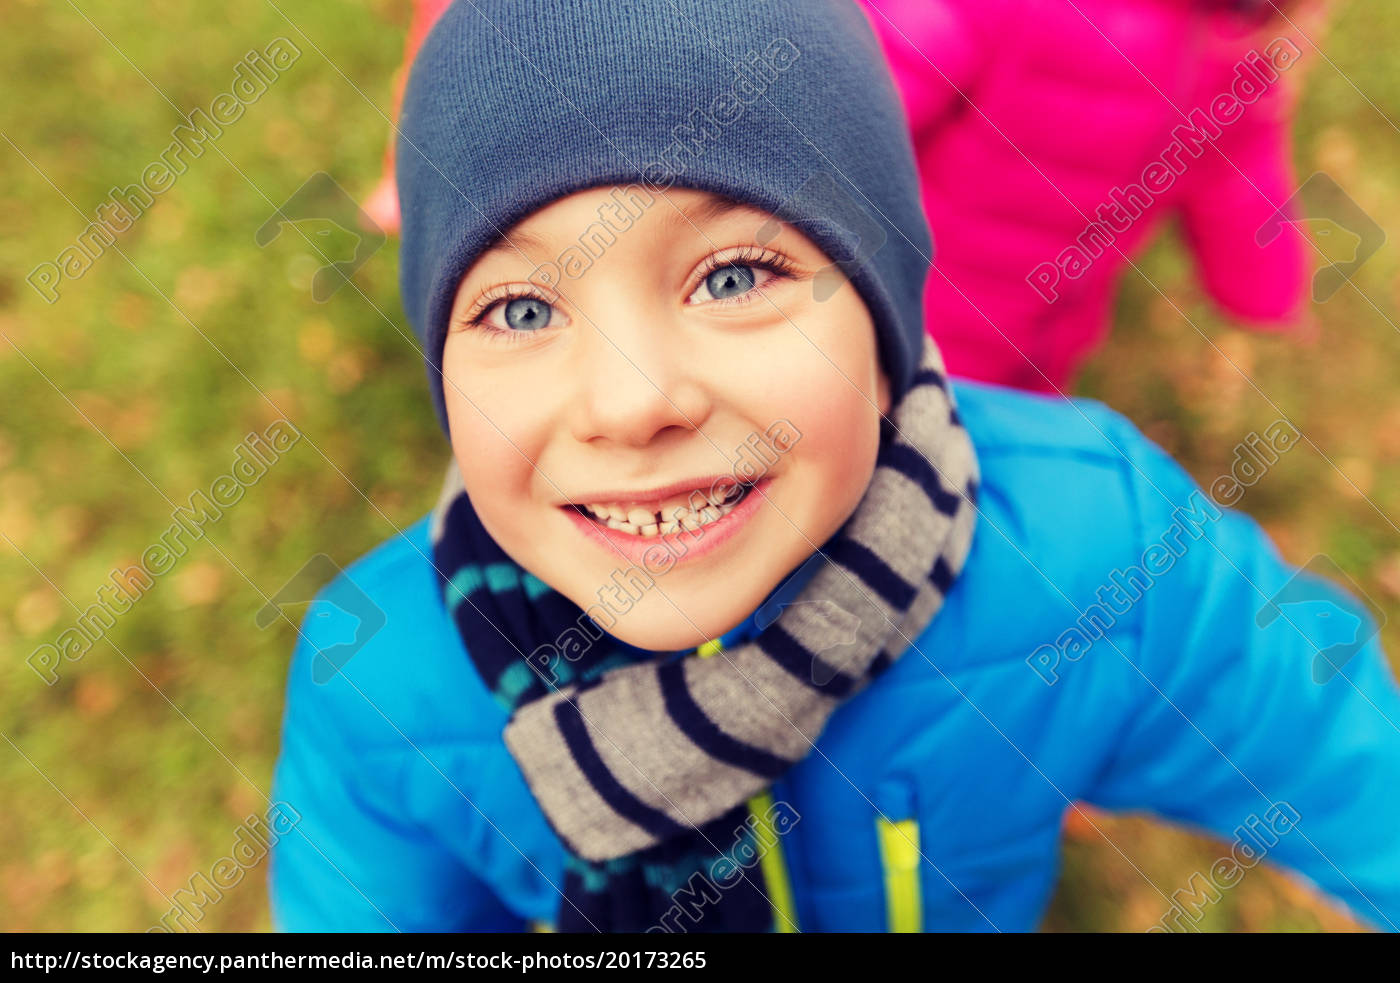 happy, little, boy, face, outdoors - 20173265